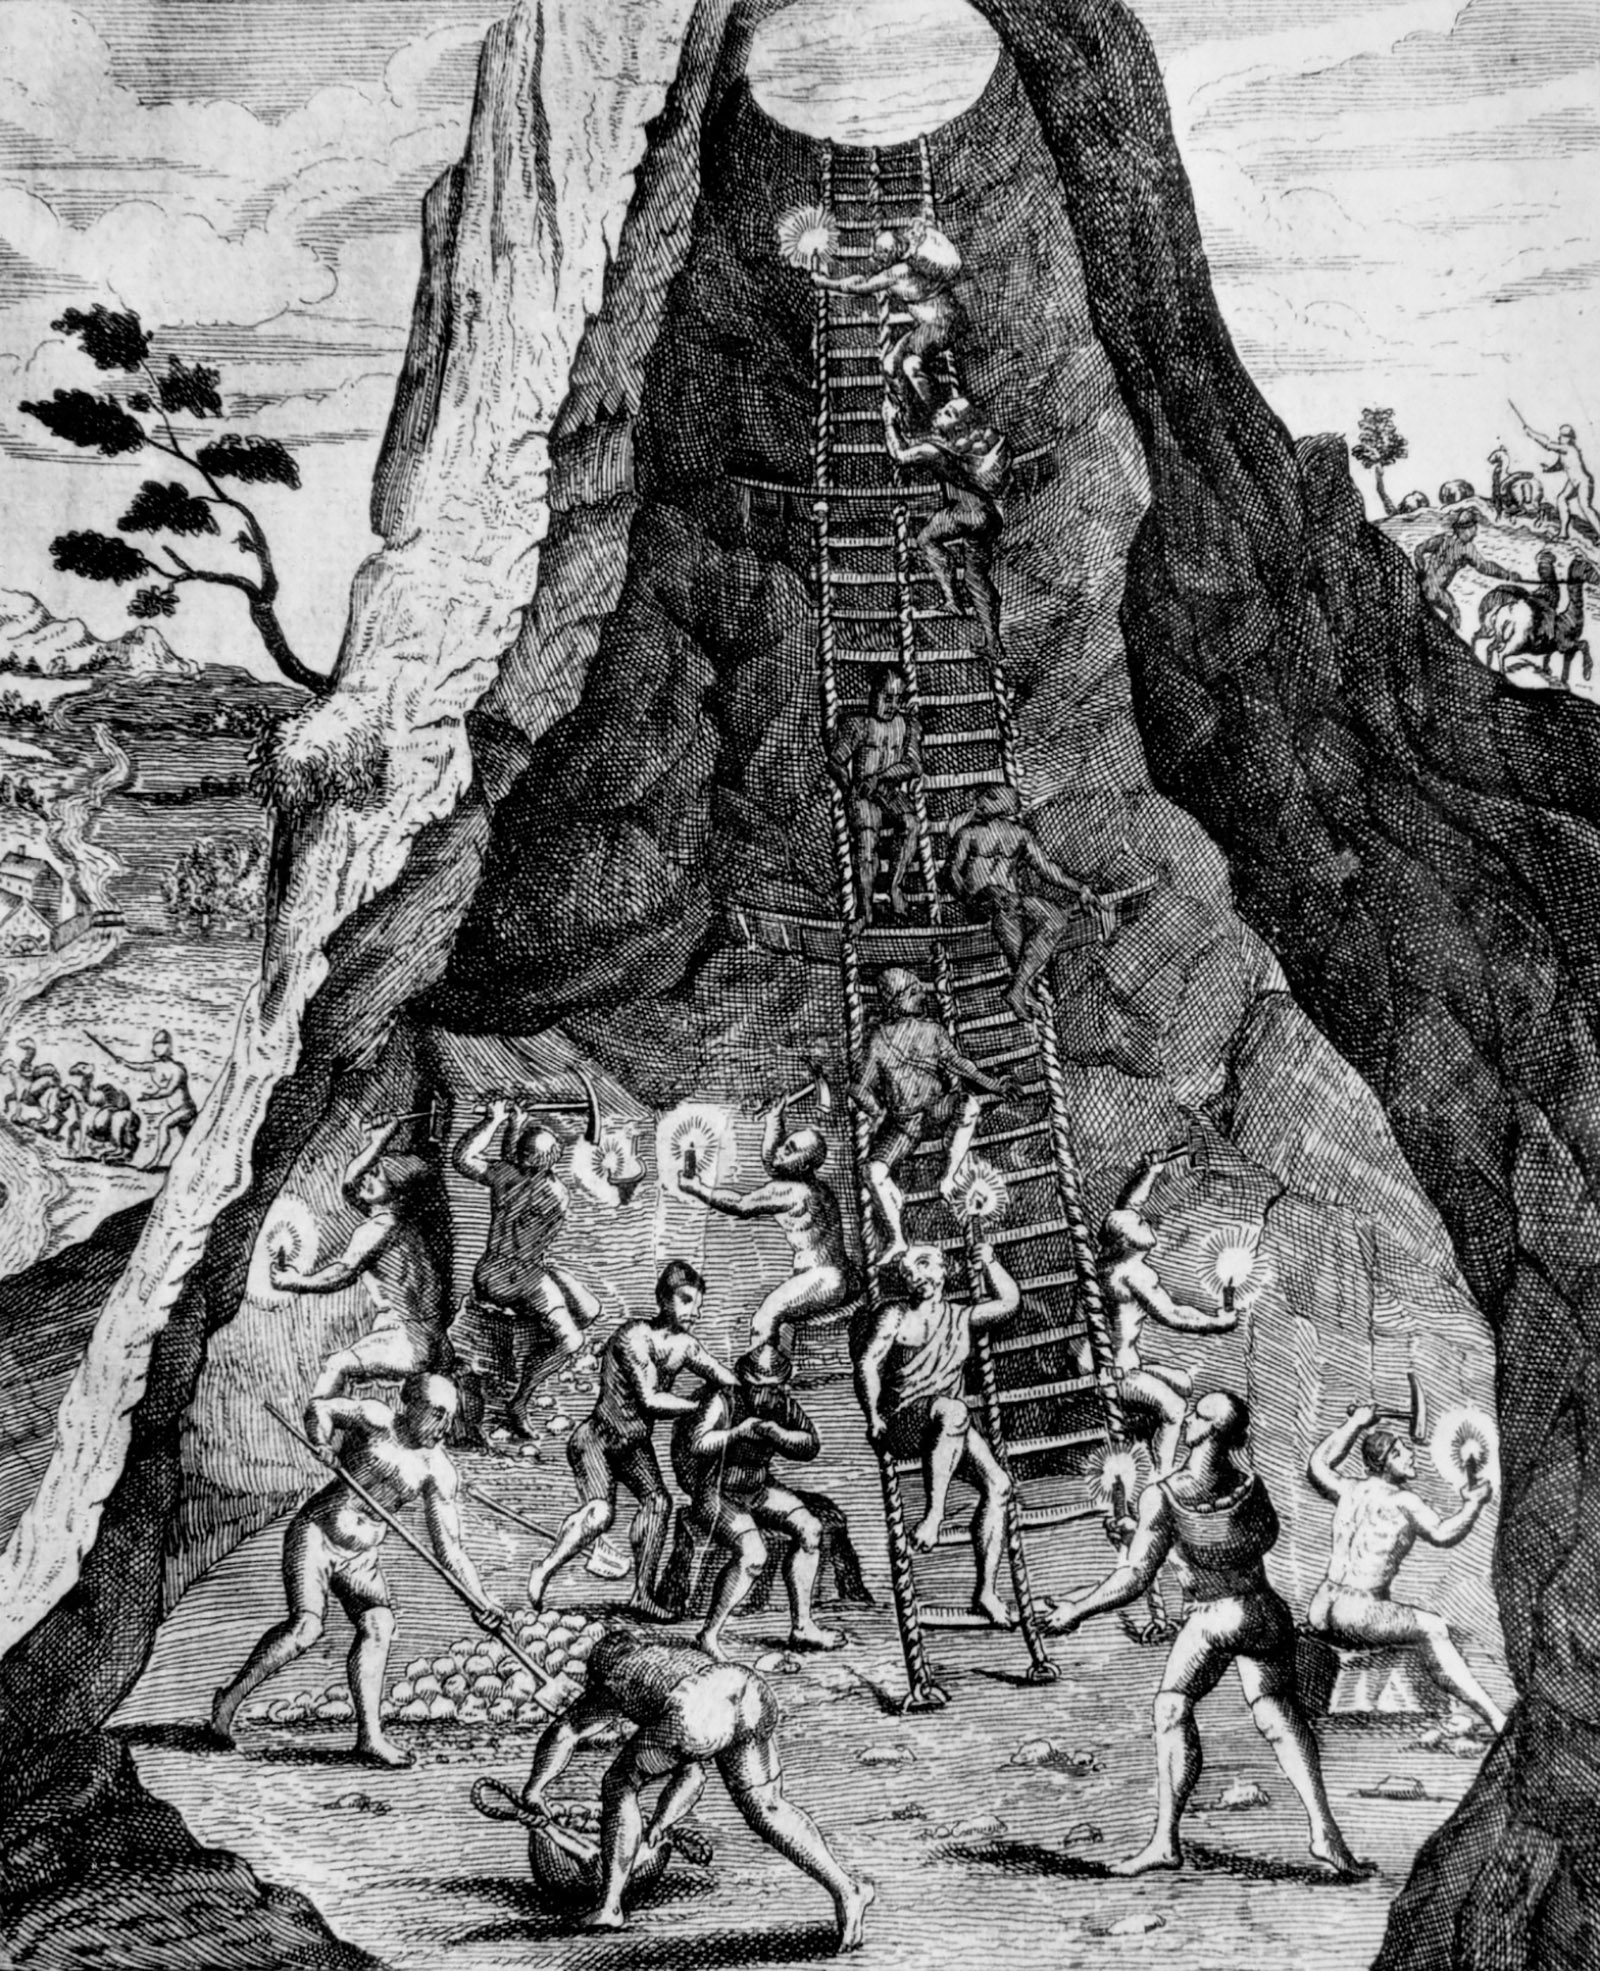 Indigenous workers in a Potosí silver mine; engraving by Theodor de Bry, circa 1590